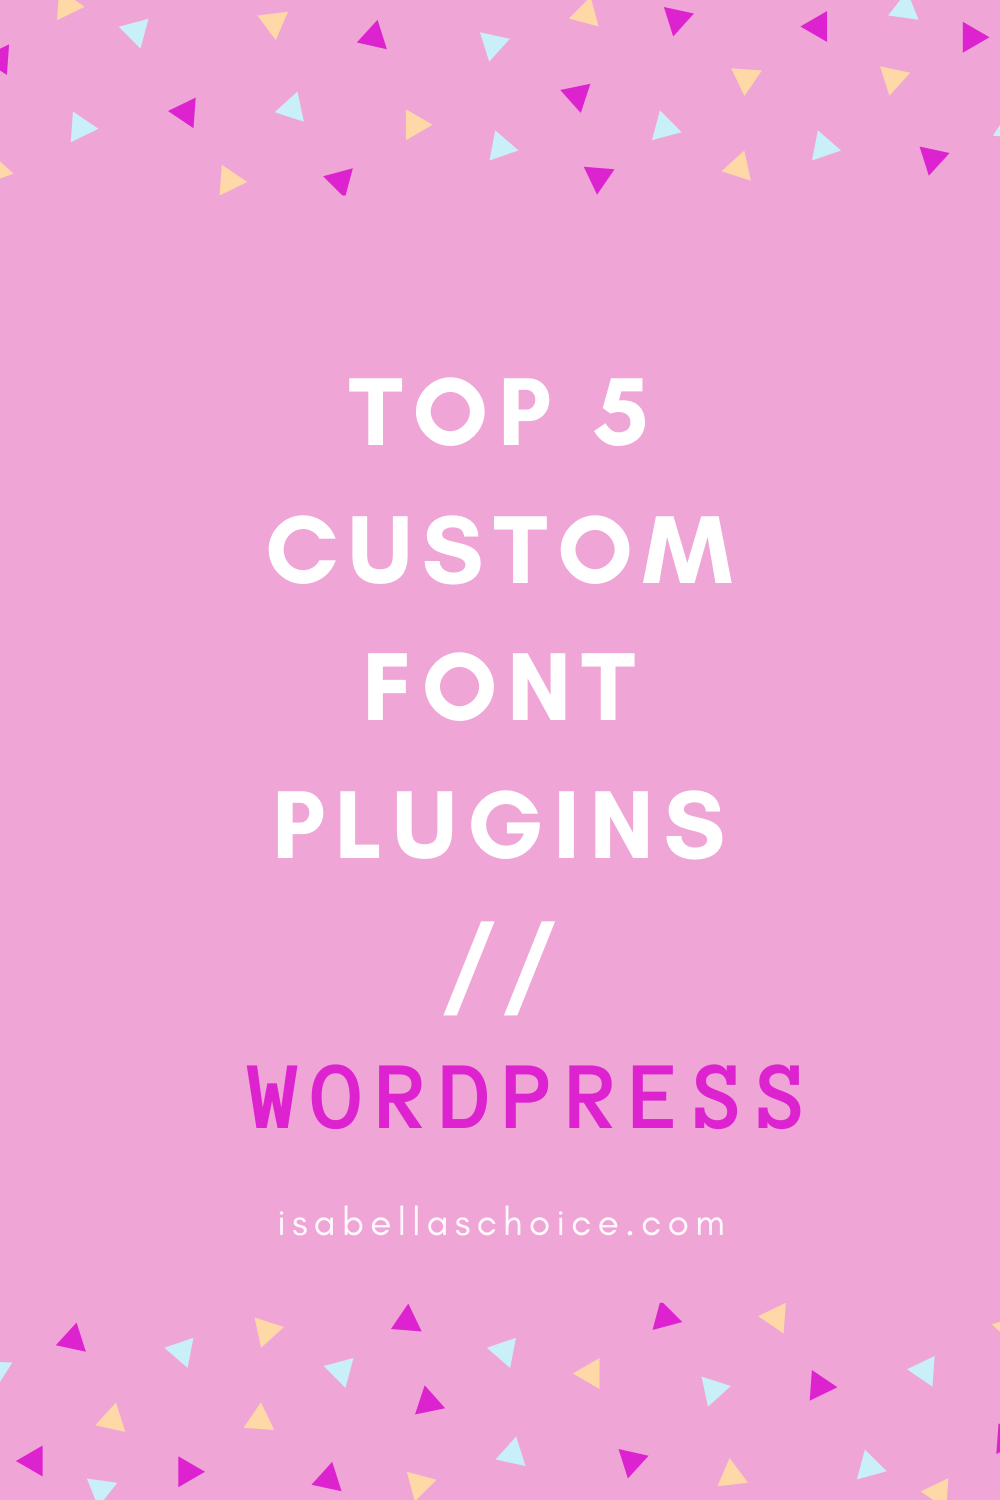 Top 5 Wordpress Plugins To Use For Adding Custom Fonts On Your Site